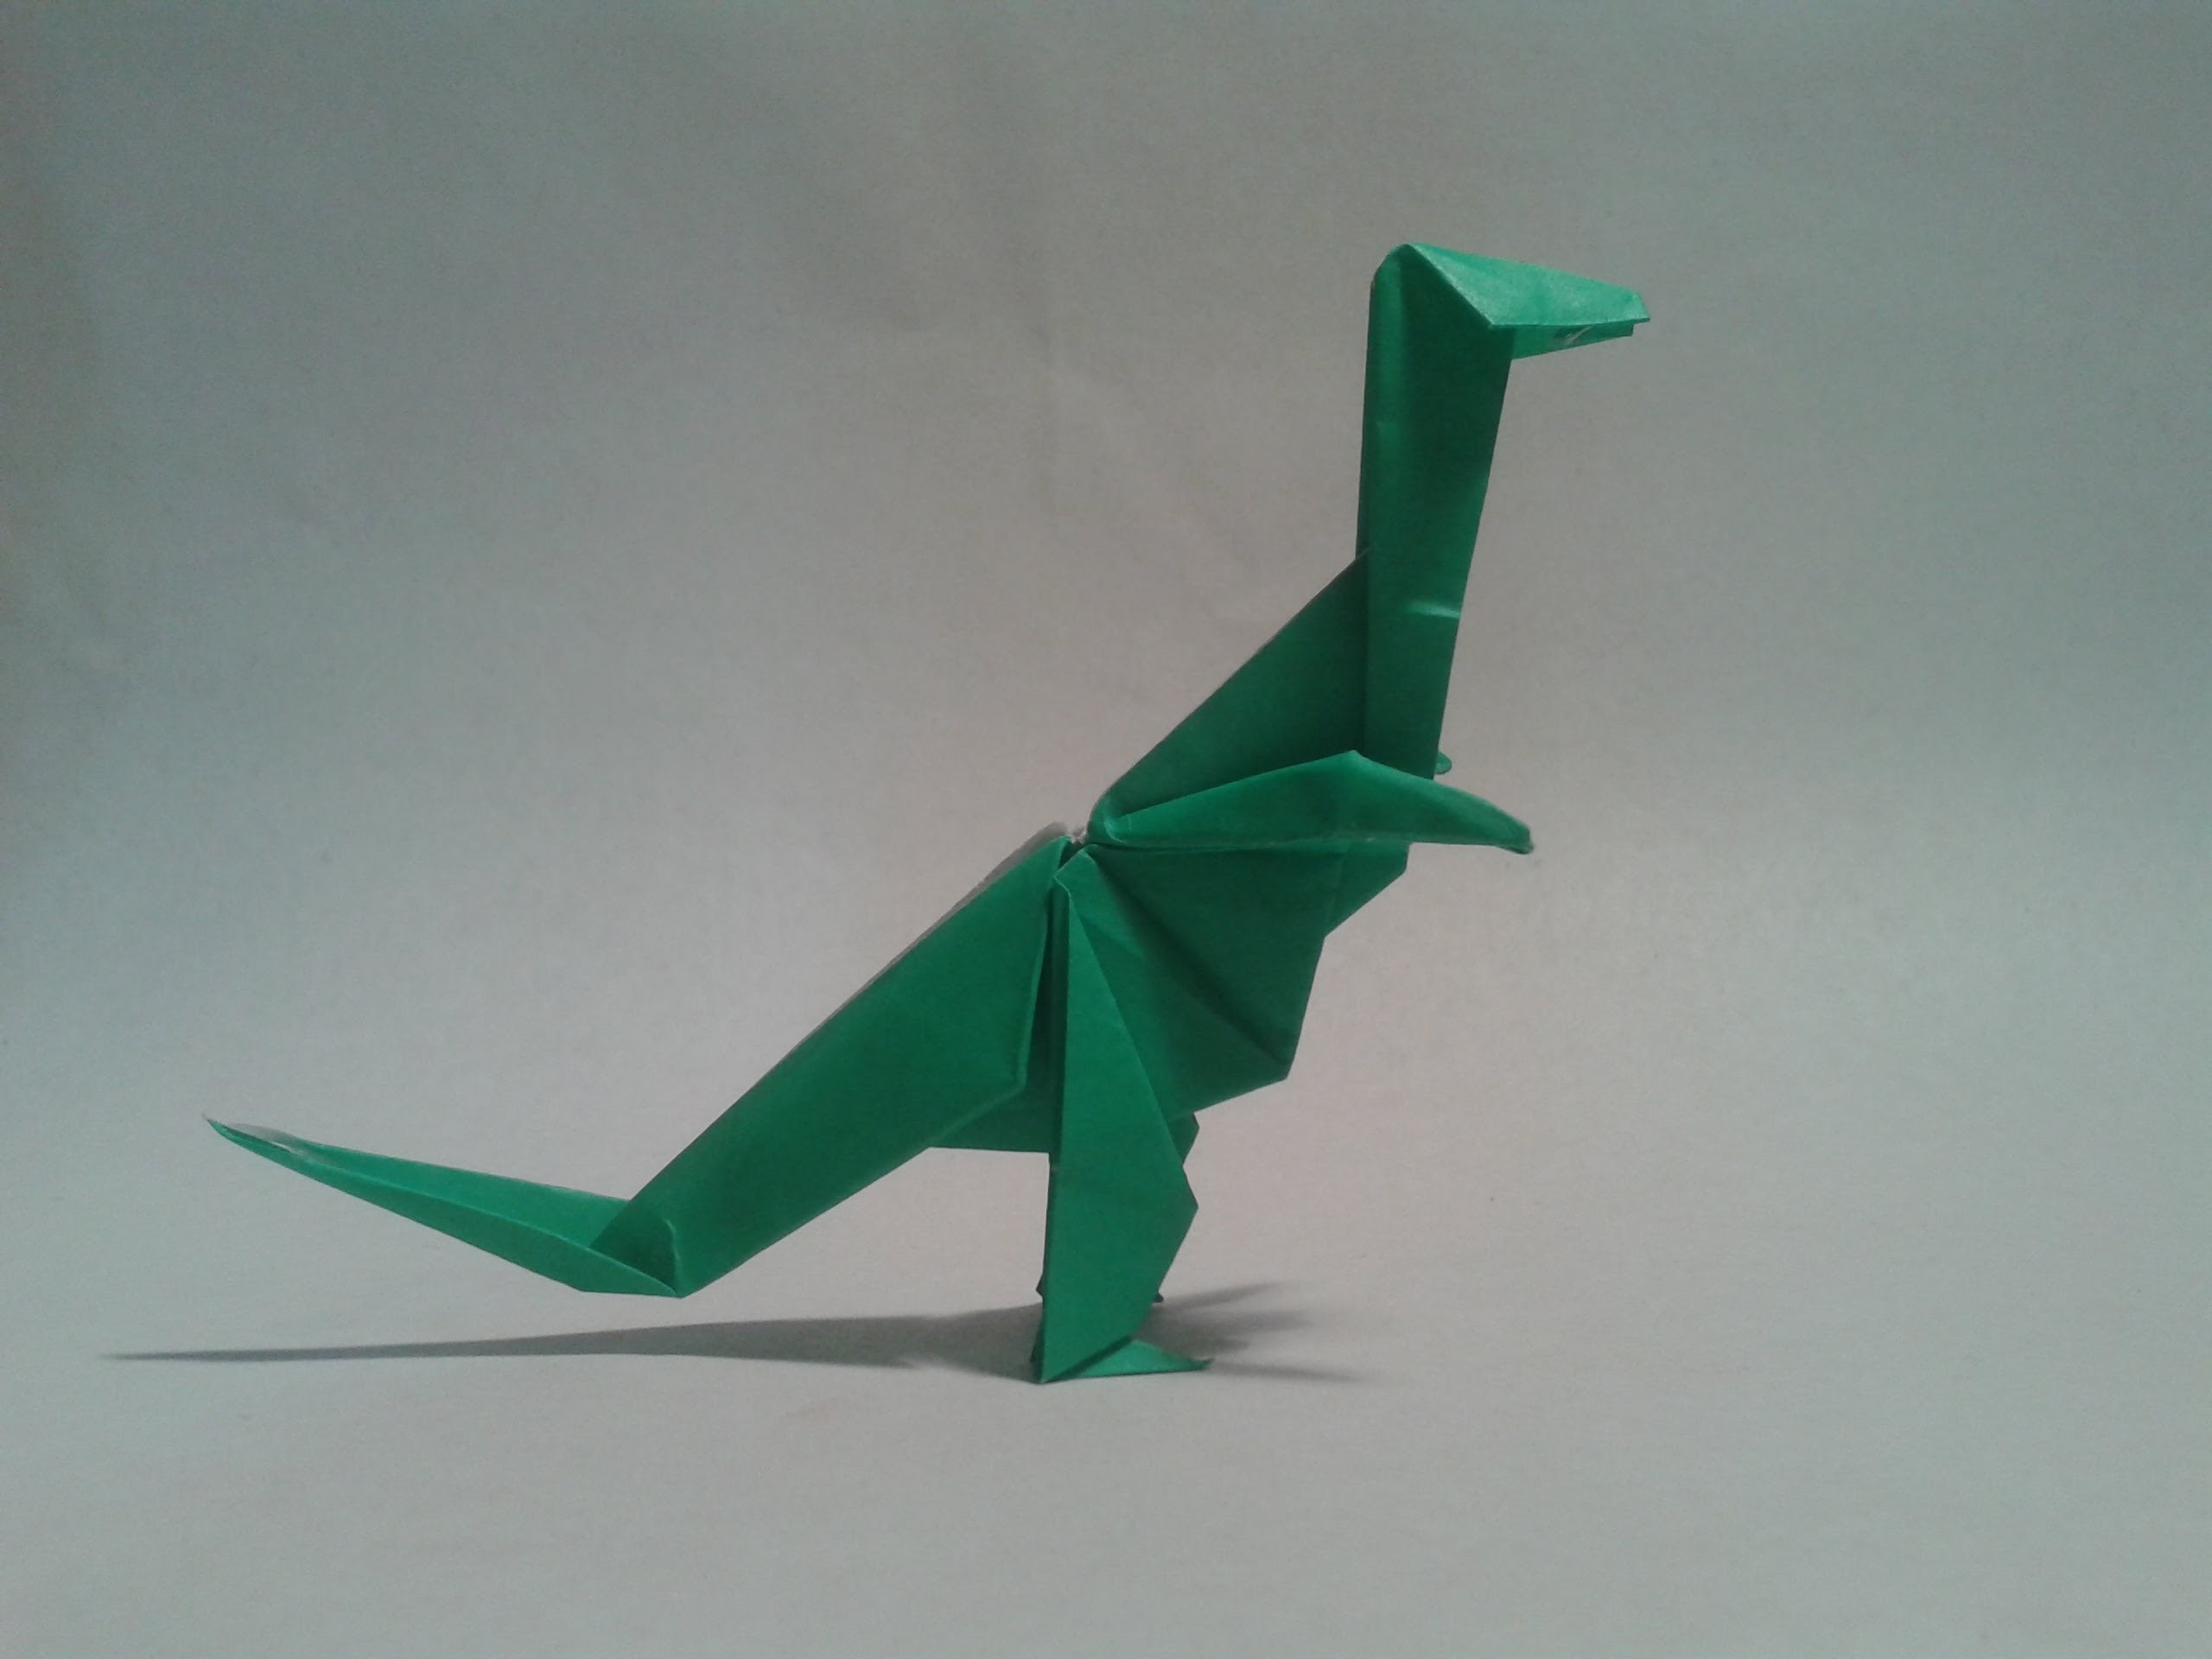 Origami - How to make an origami dinosaur (T-REX) - photo#27